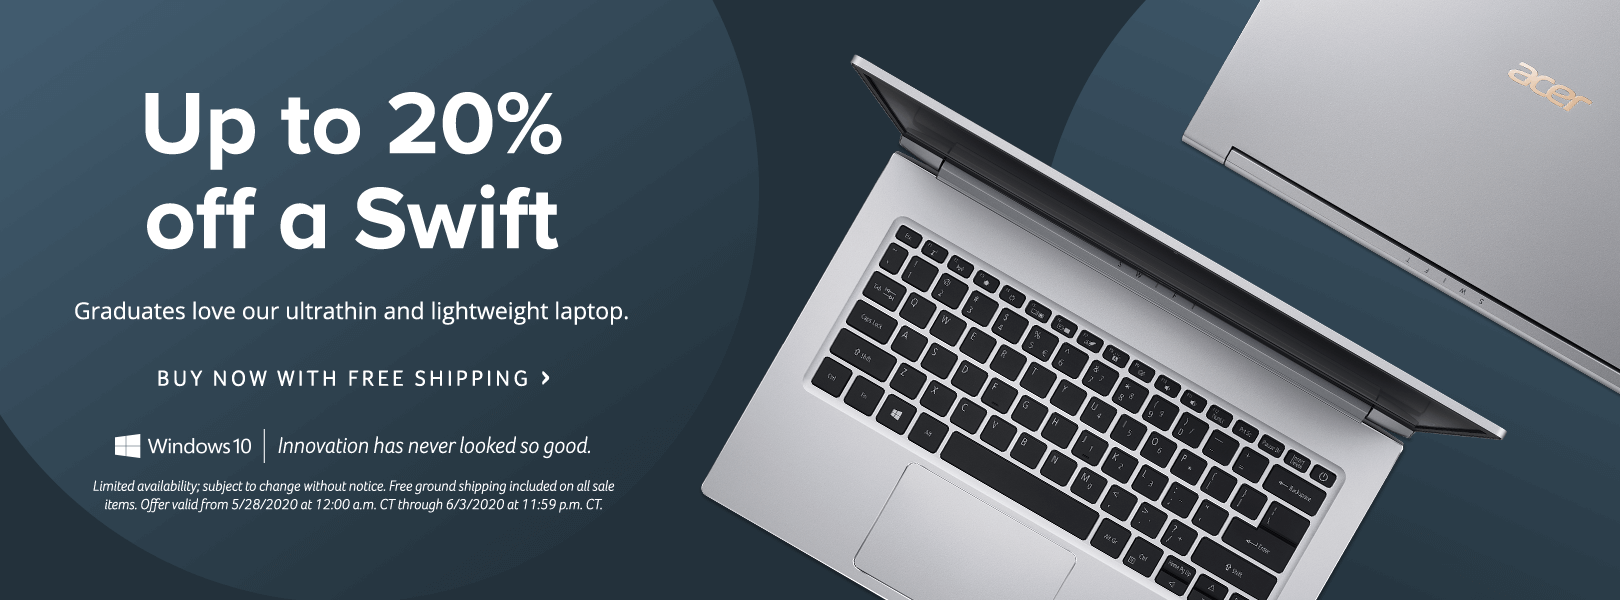 Save up to 20% on a Swift Laptop